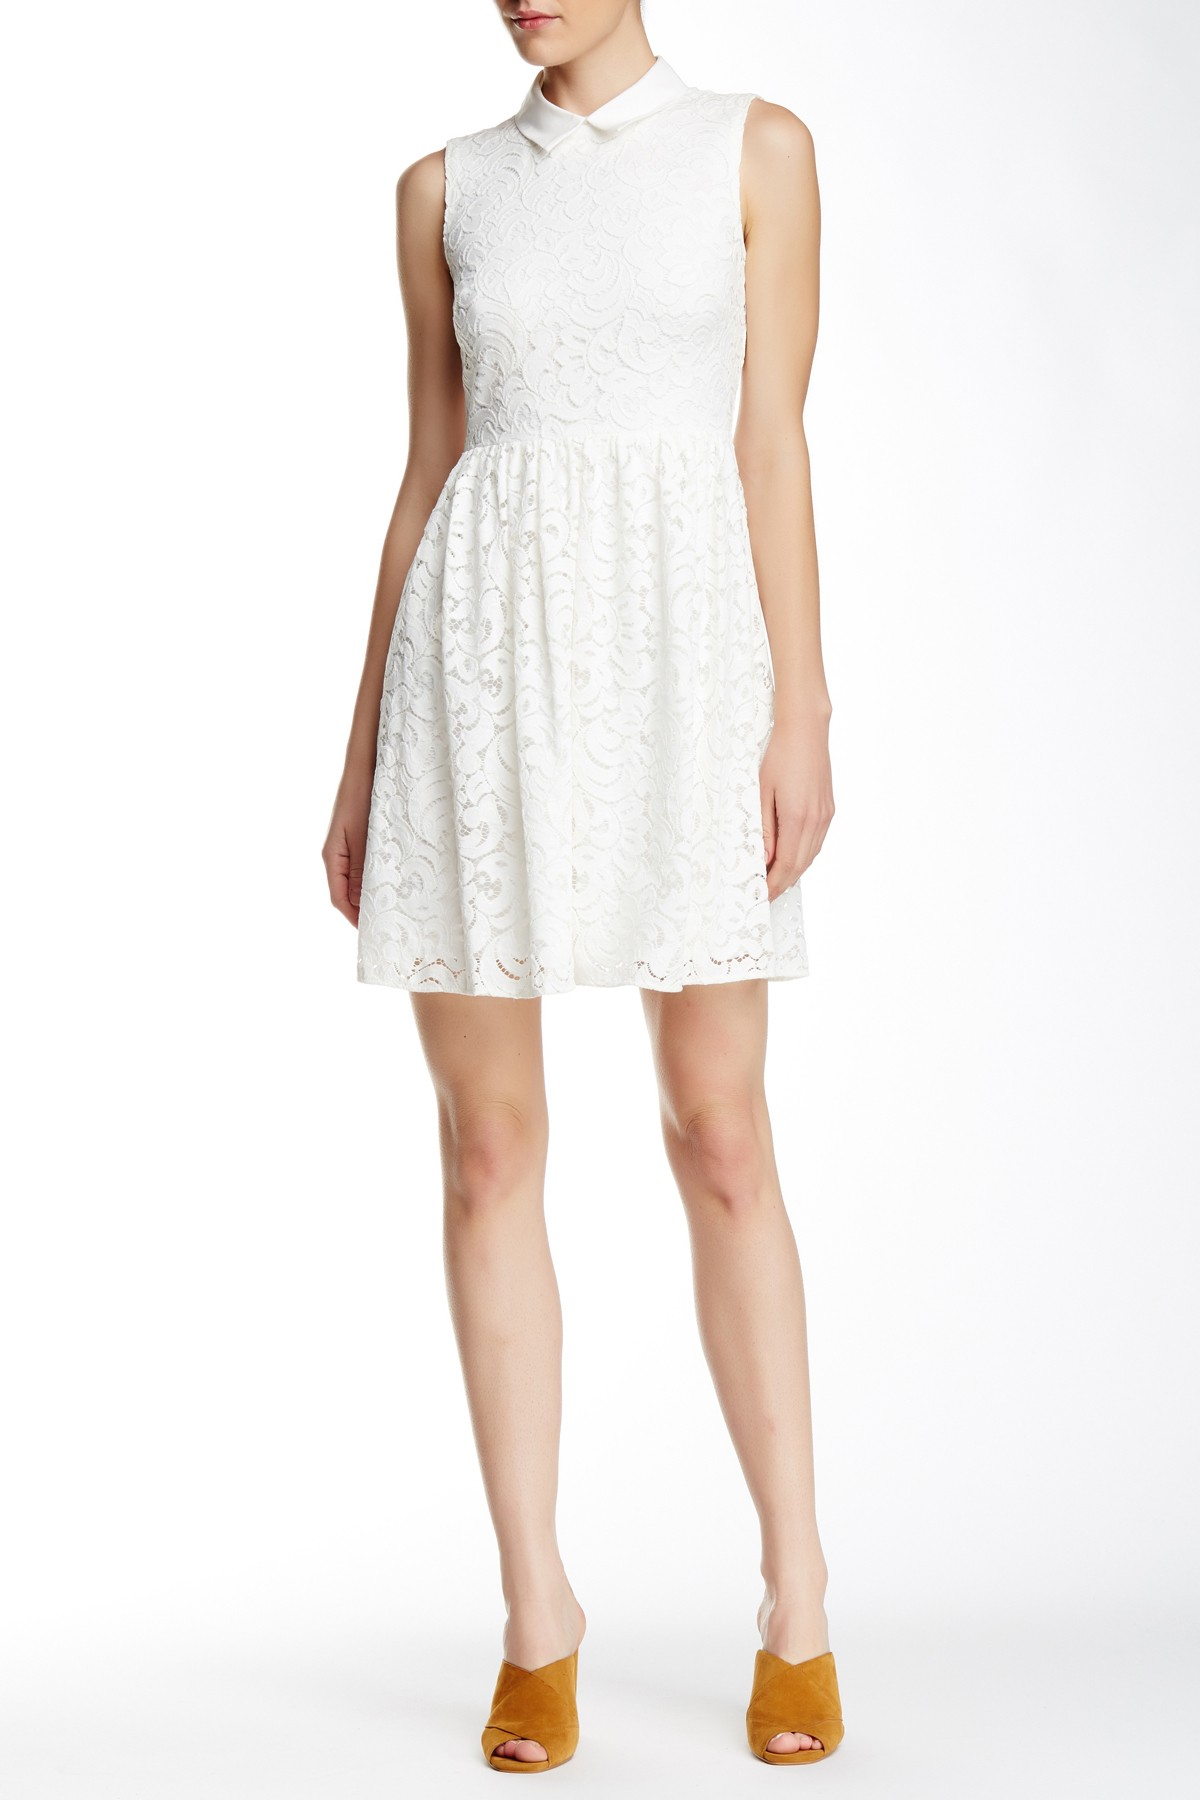 Betsey Johnson Lace Collar Dress In White Lyst